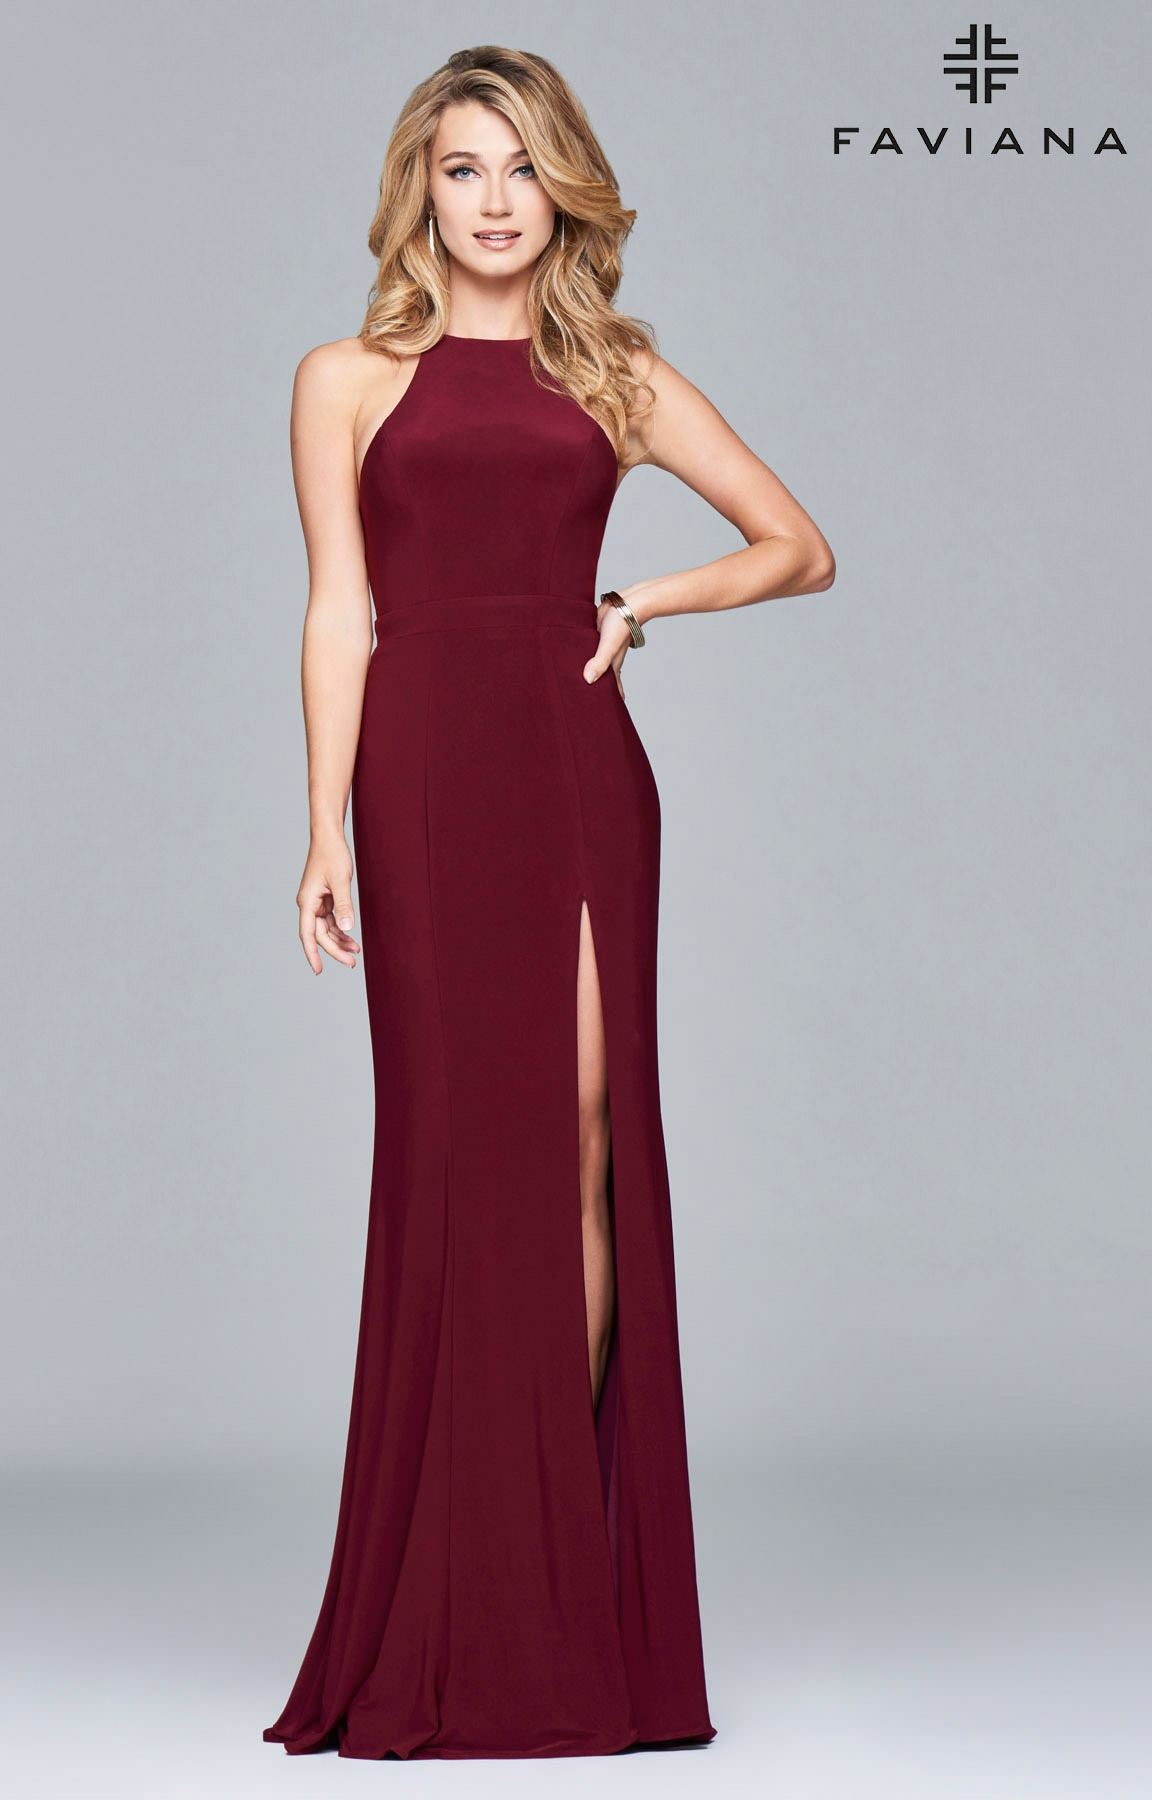 Faviana 7976 Ilex Halter High Slit Formal Dress Prom Dress